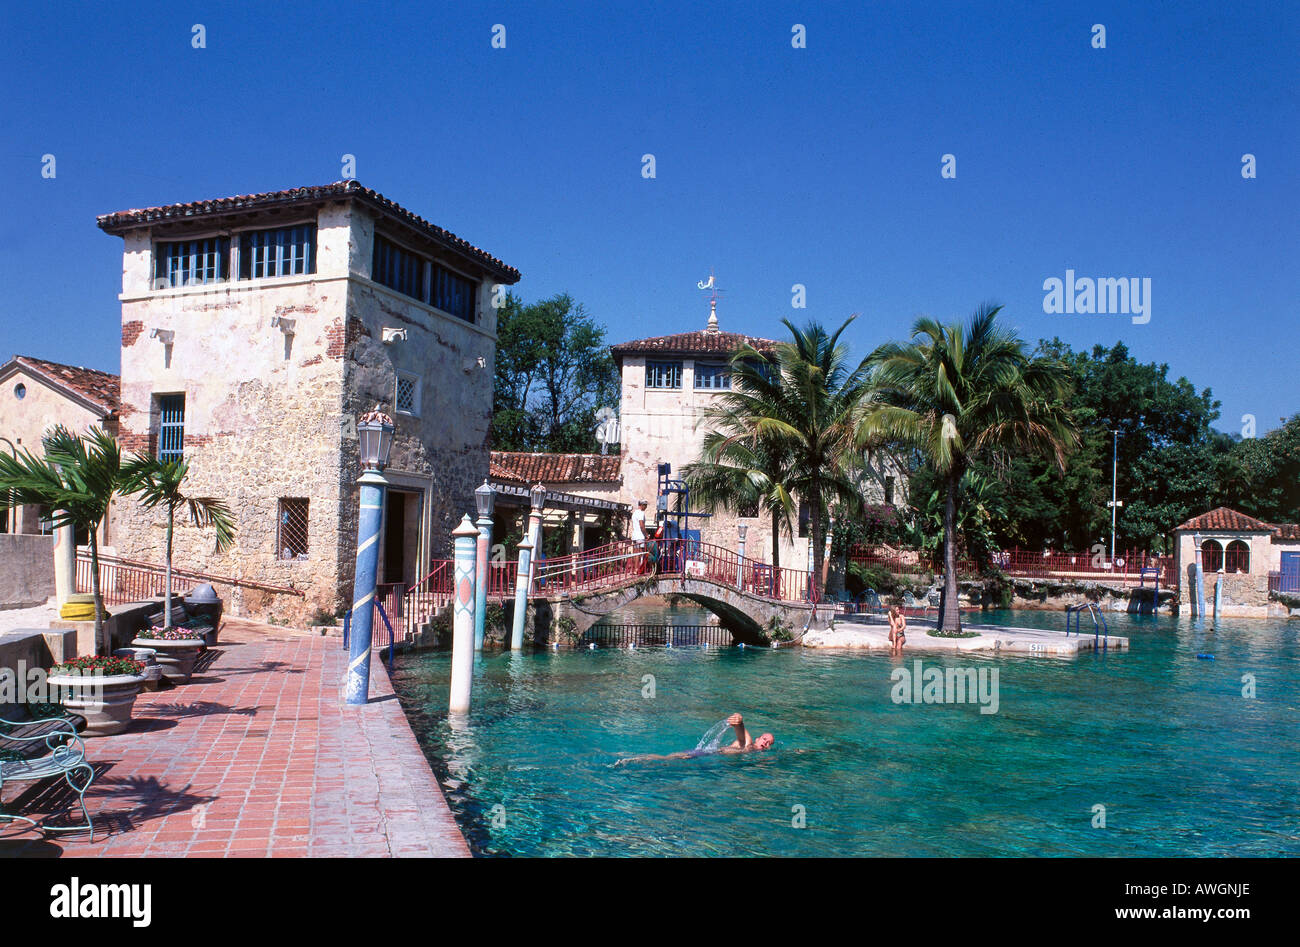 USA, Florida, Miami, Coral Gables, visitor swimming in Venetian Pool - Stock Image